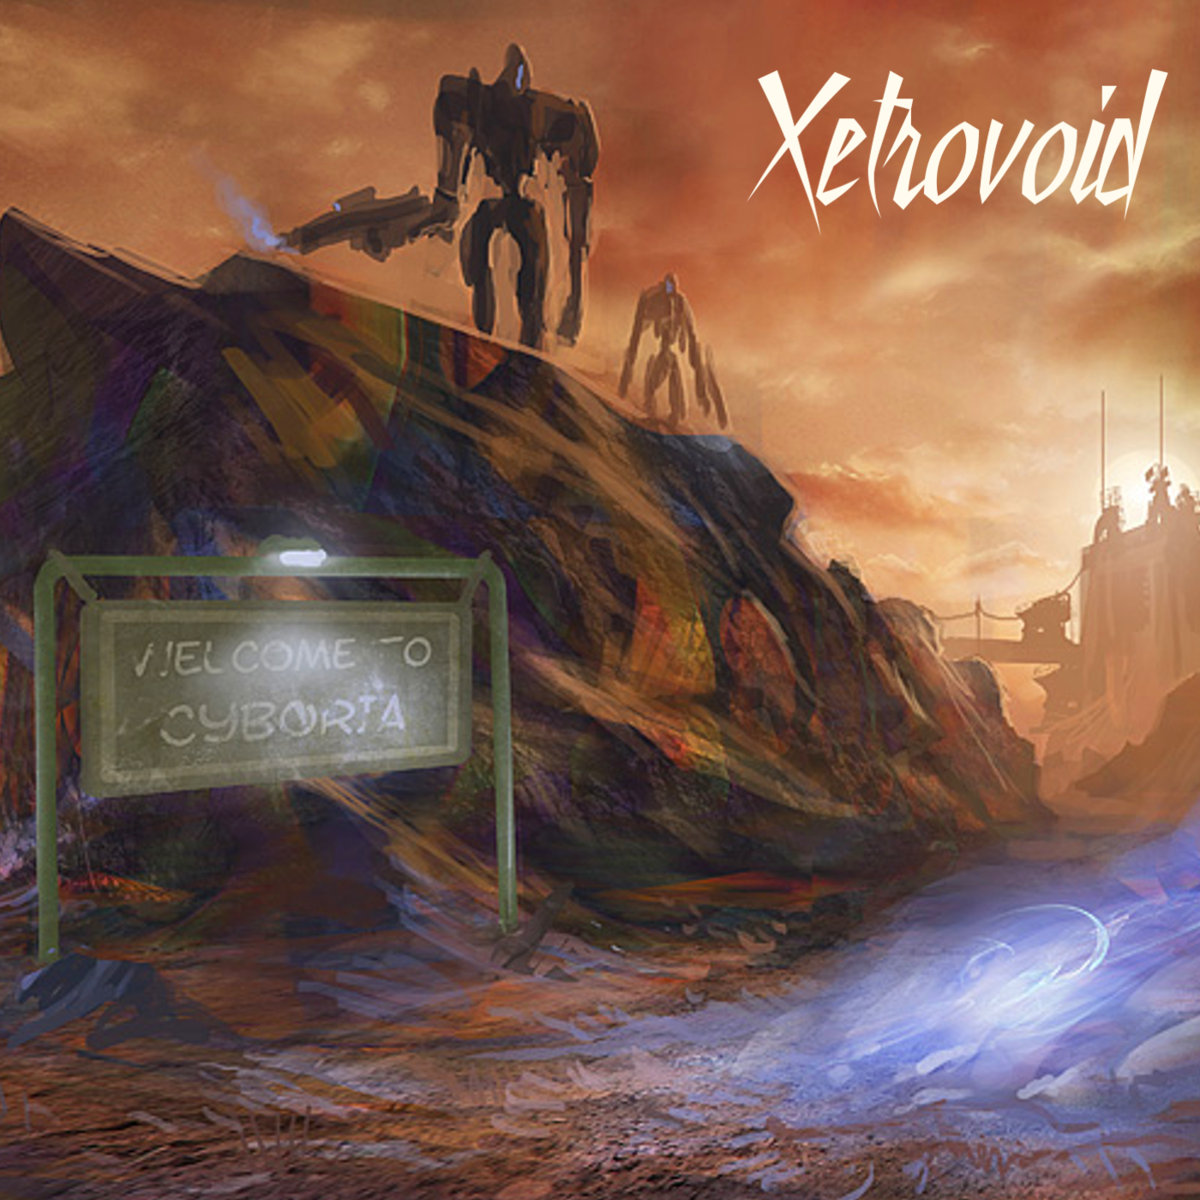 october_dossier_xetrovoid